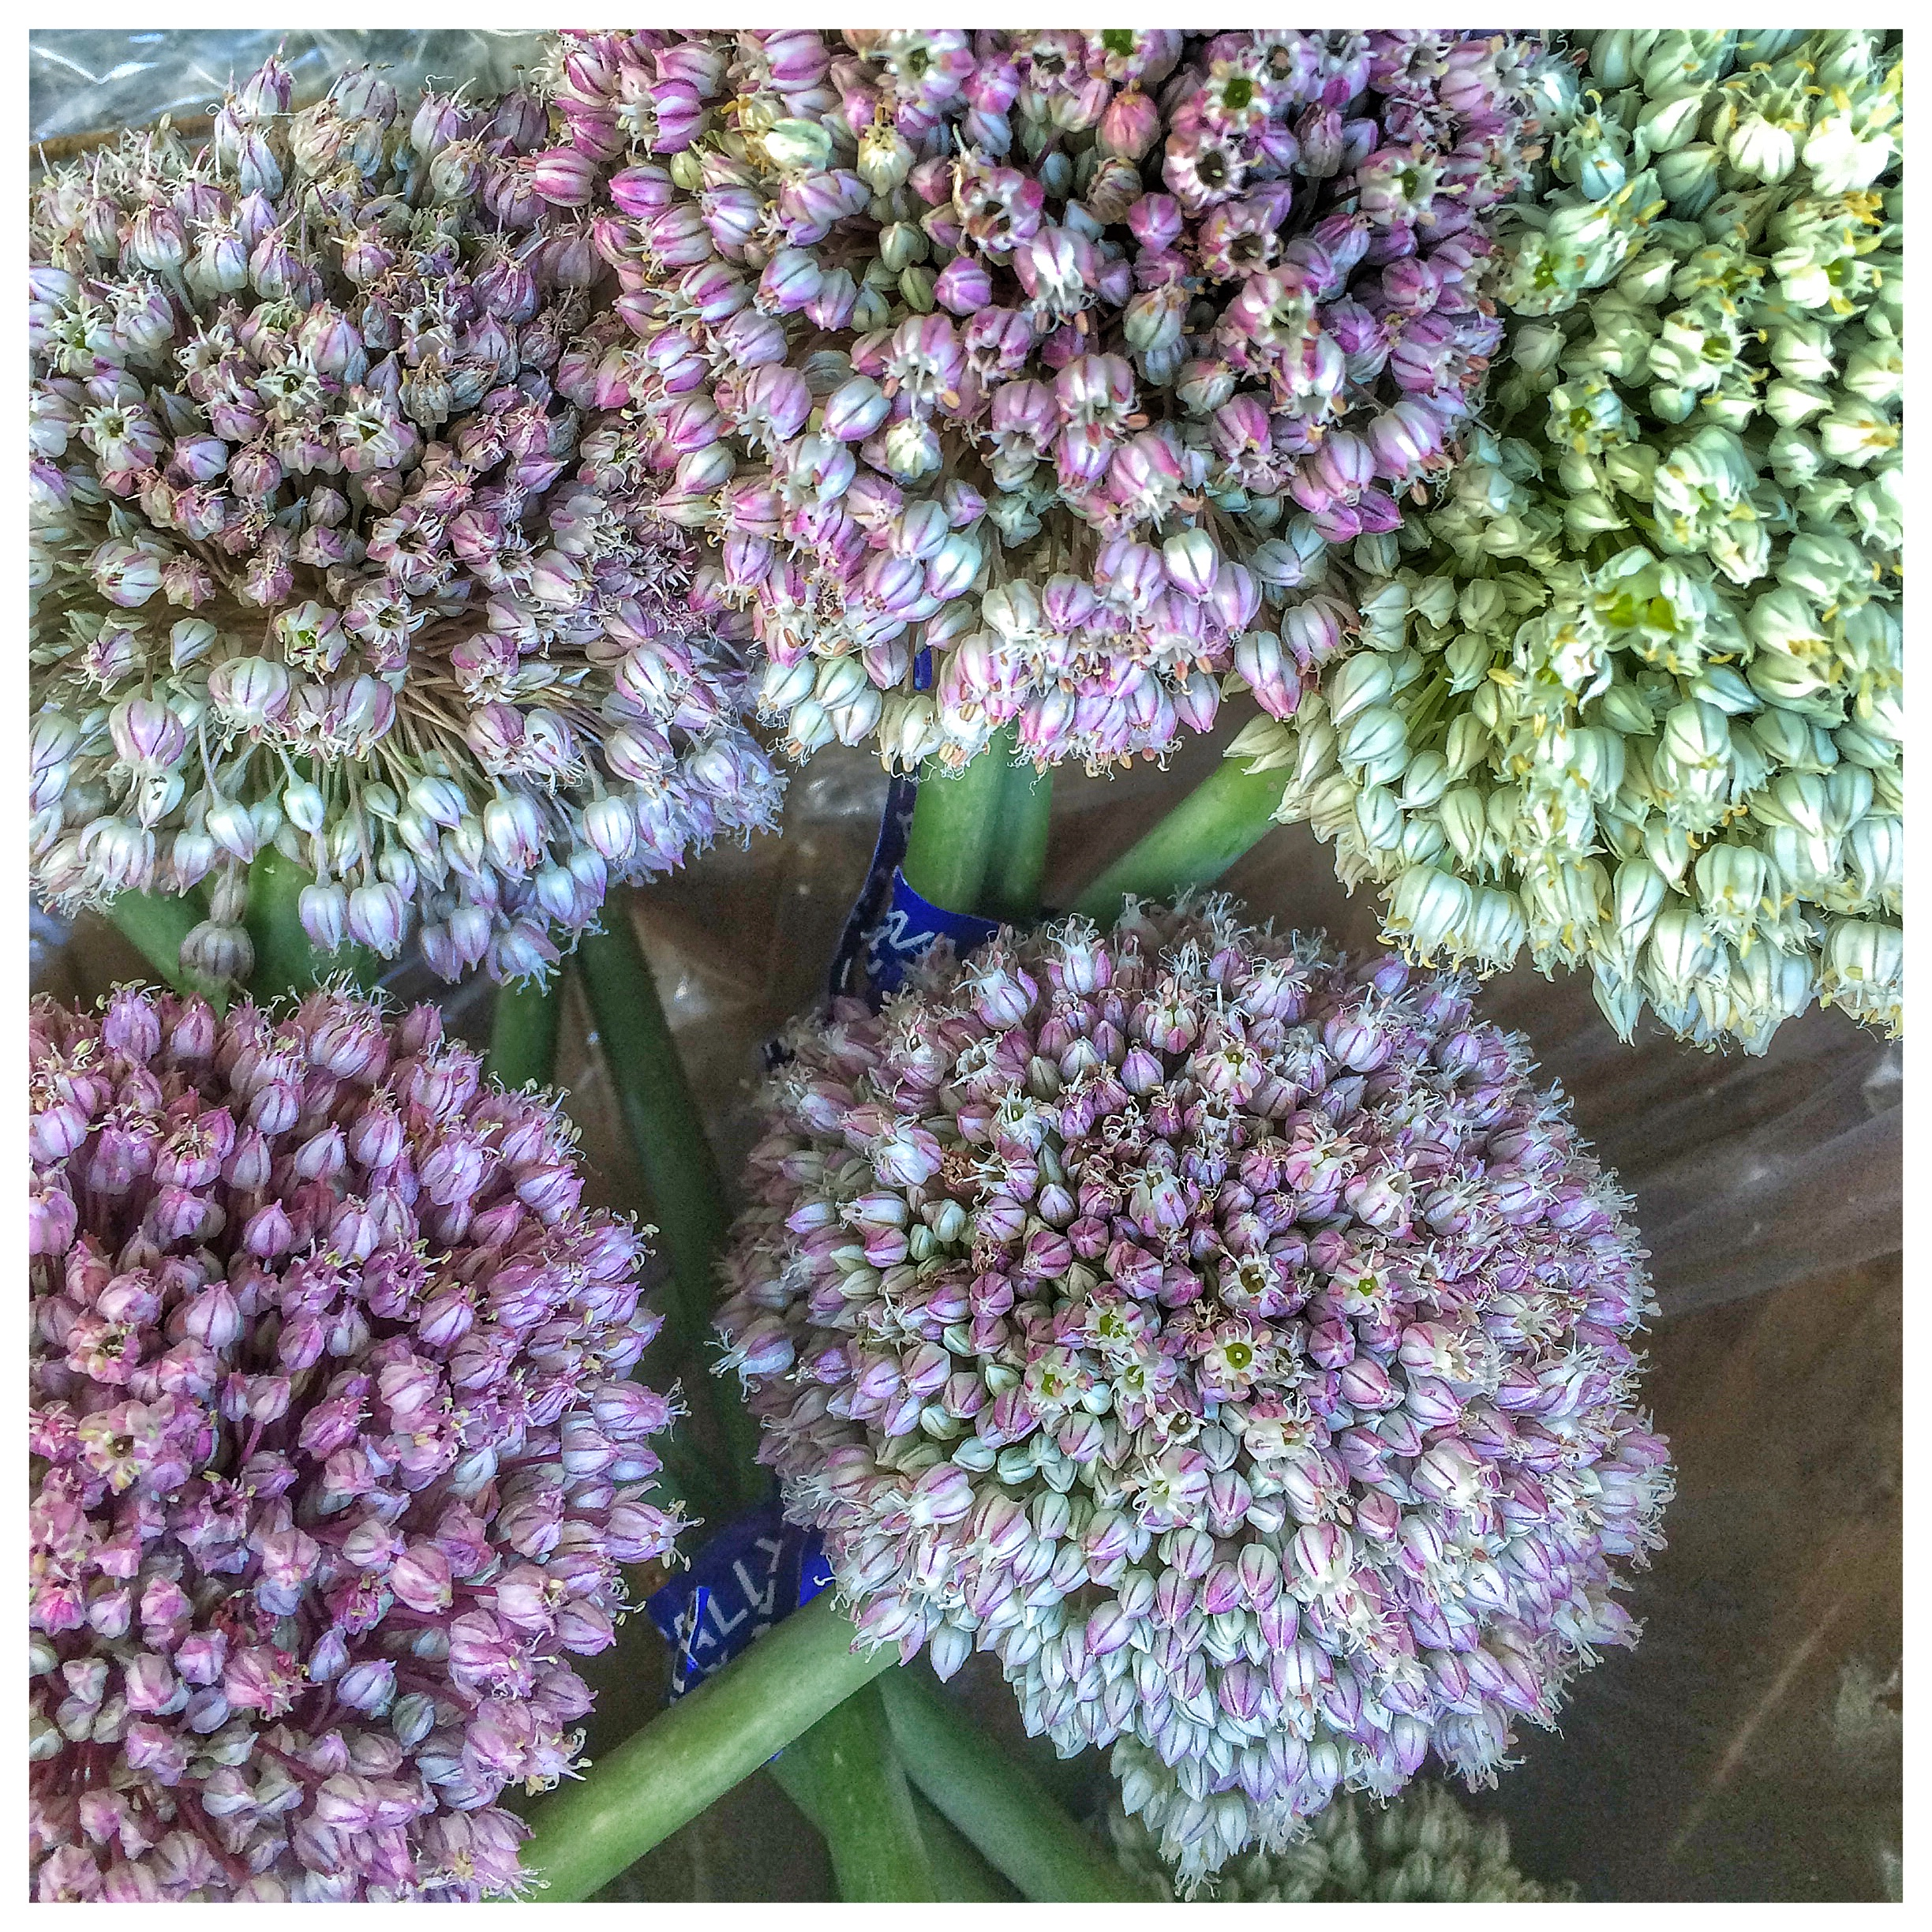 Leek Blossoms from Star Route Farms in Bolinas